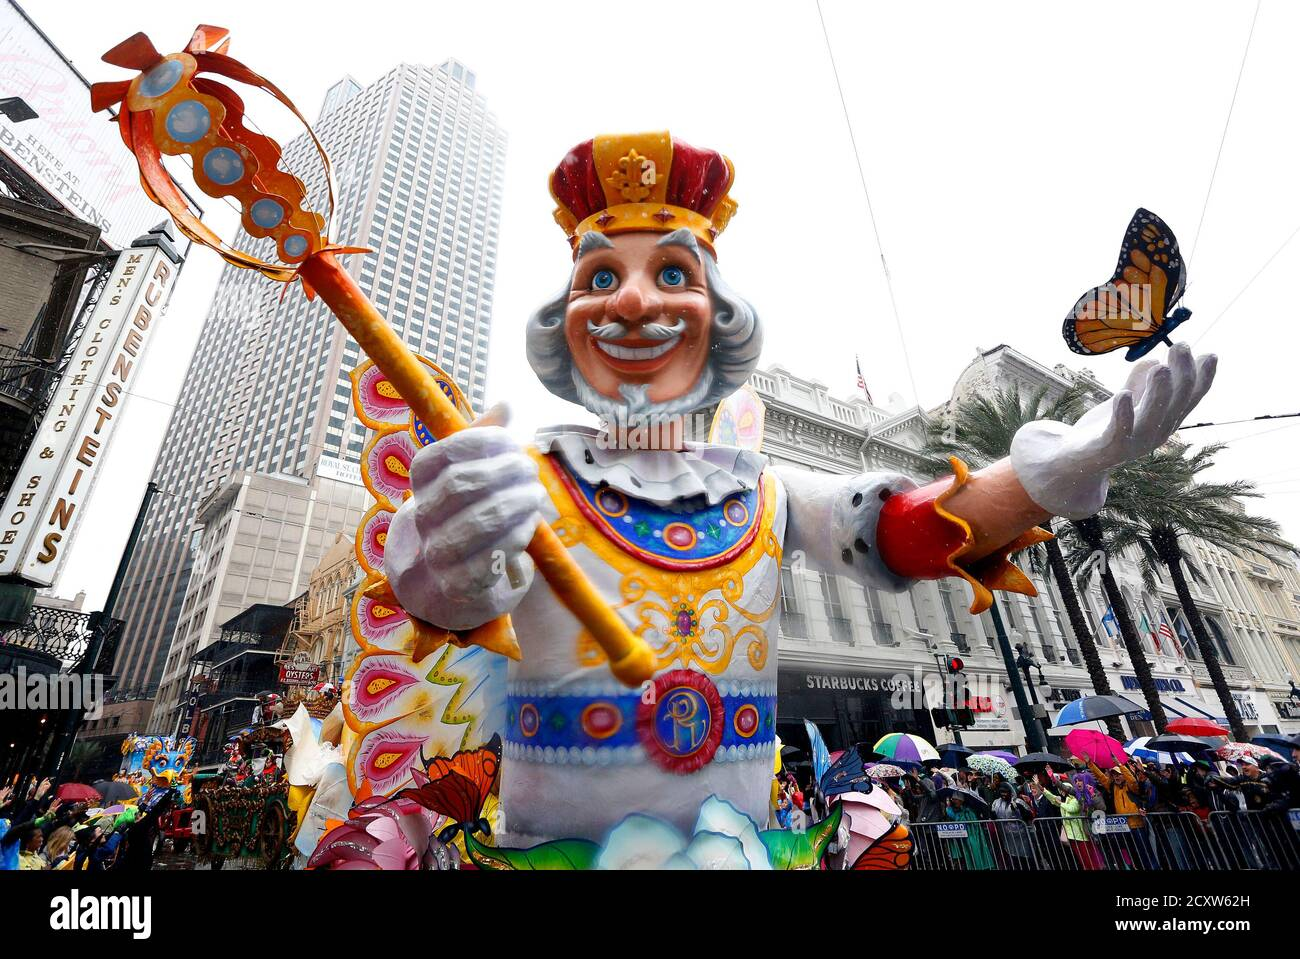 A float from the Krewe of Rex parade is seen on Mardi Gras in New Orleans, Louisiana March 4, 2014. REUTERS/Jonathan Bachman  (UNITED STATES - Tags: SOCIETY ENTERTAINMENT) Stock Photo